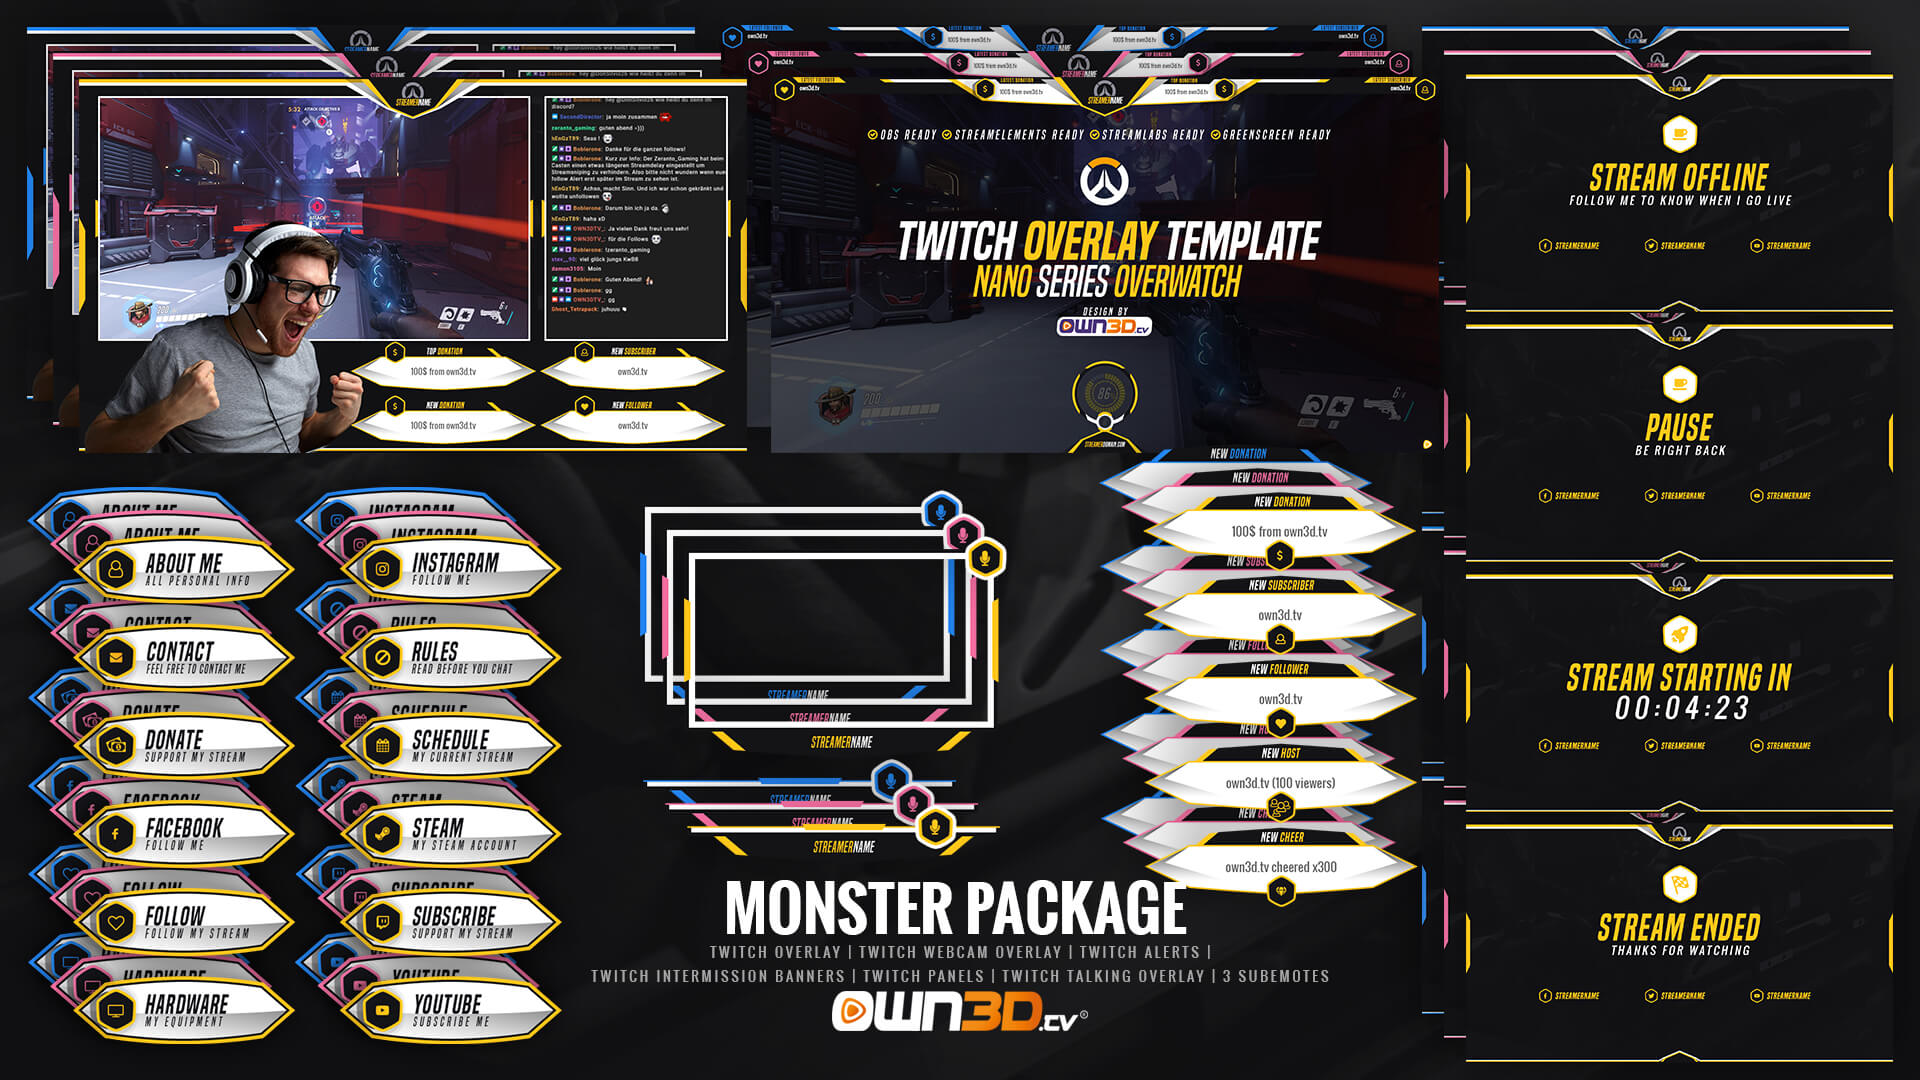 nano-series-ALL-twitch-overlay-package-03-monster.jpg